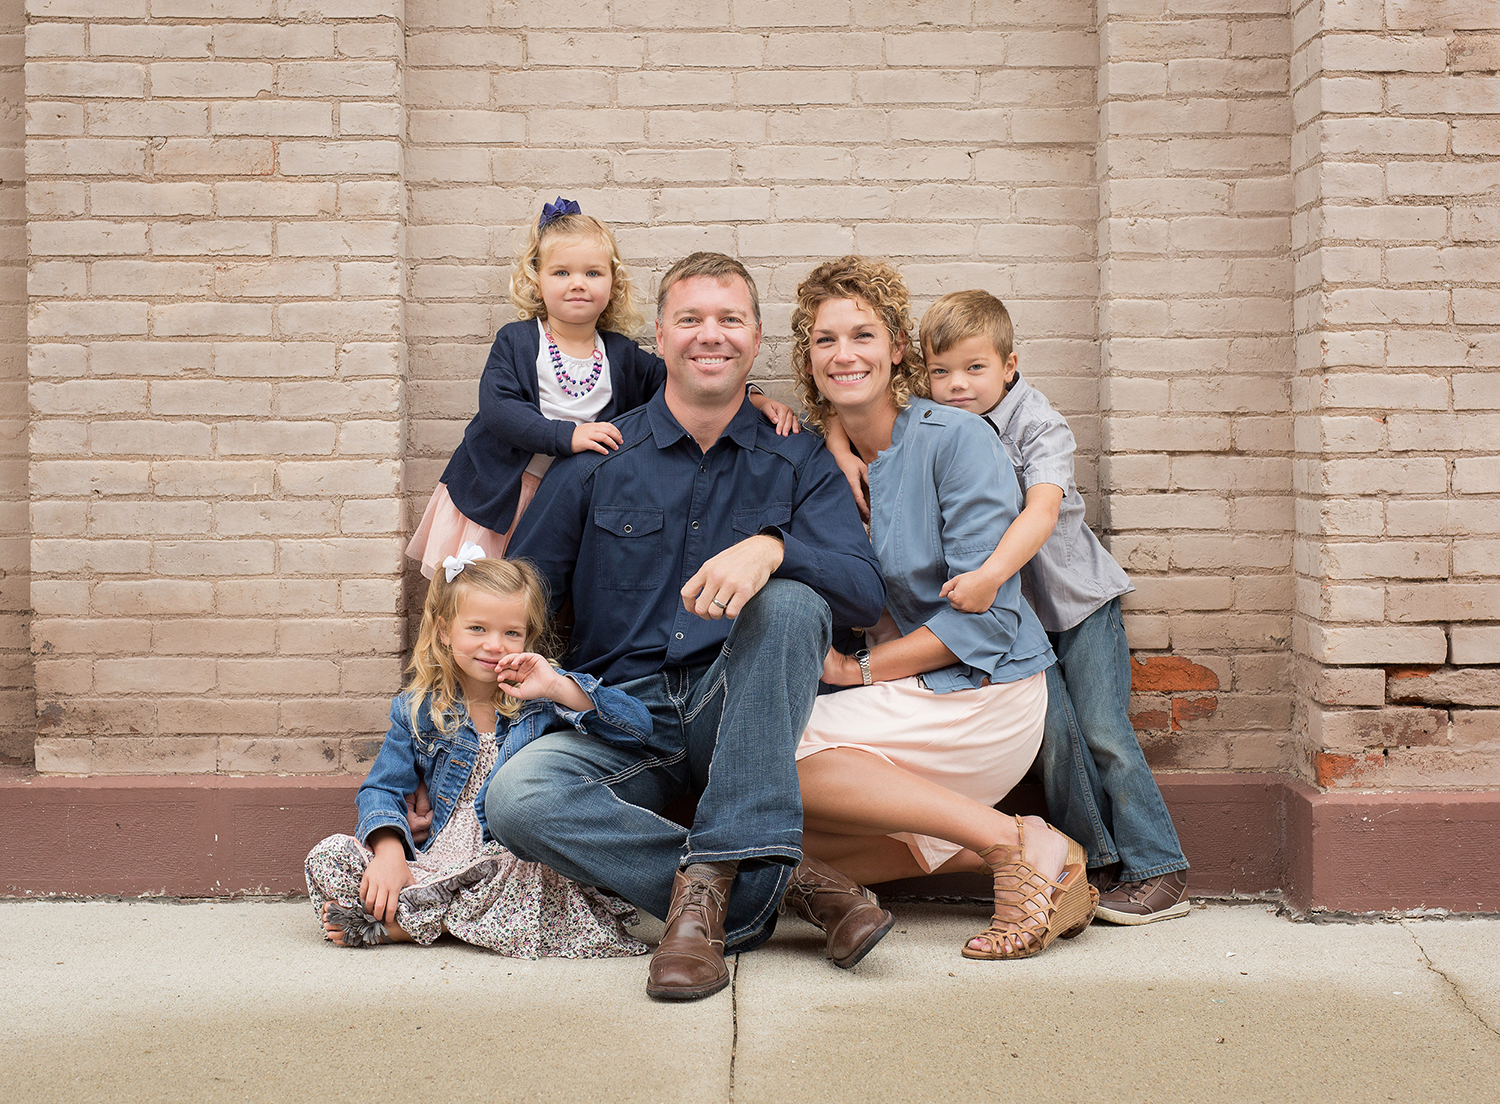 Greenville Ohio, family portrait, outdoor family portrait, urban family portrait, fun family portrait, family clothing